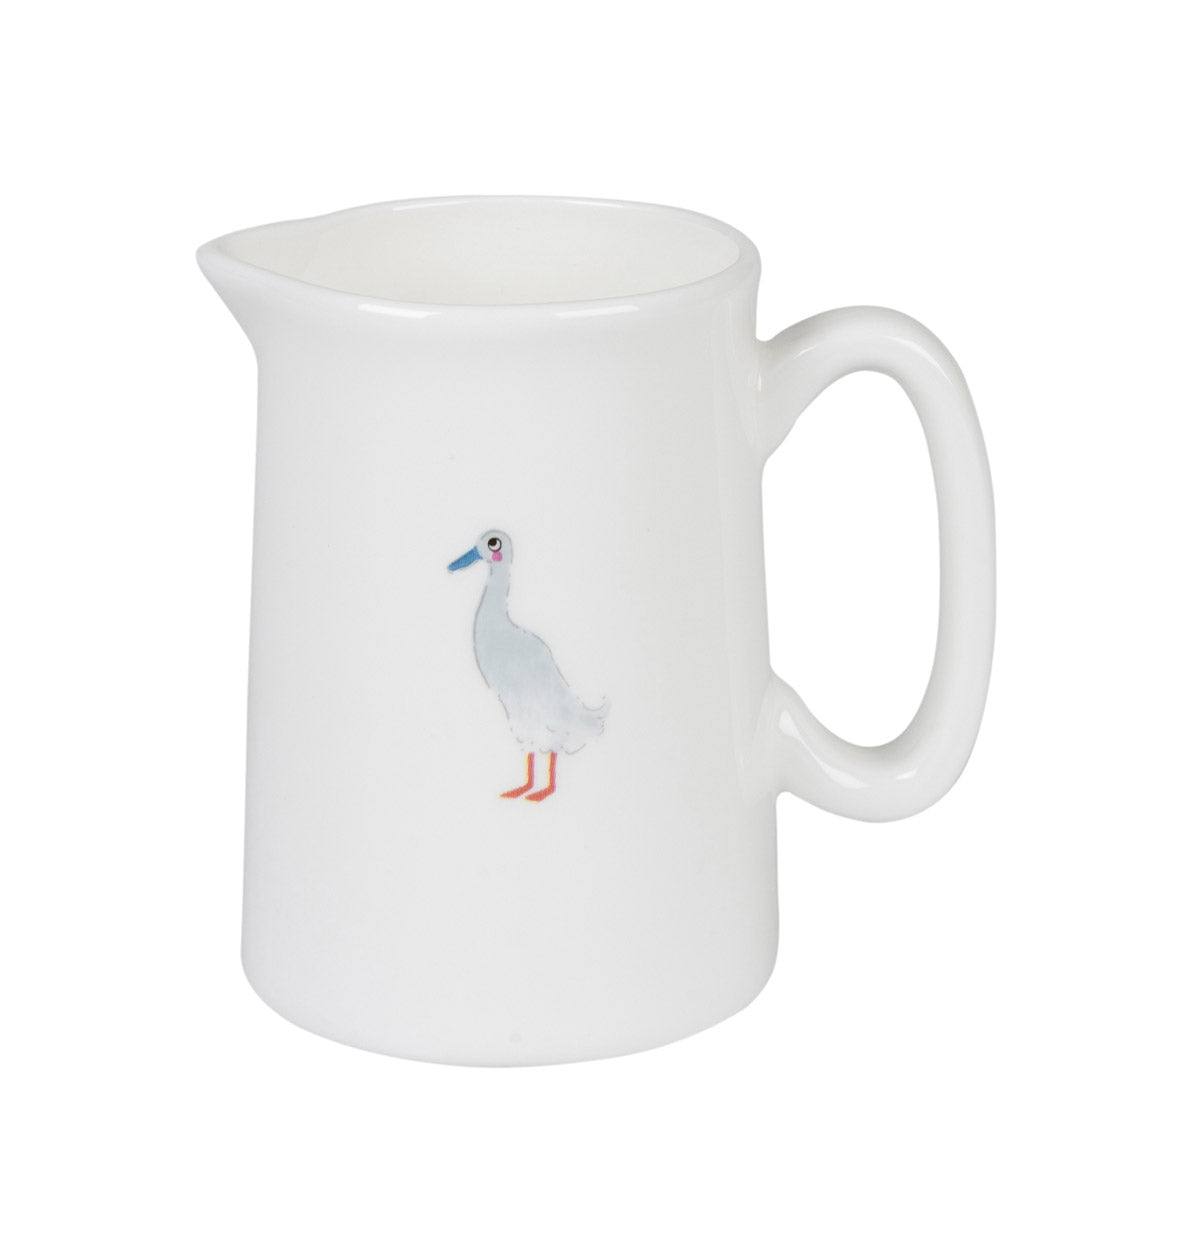 Runner Duck Jug